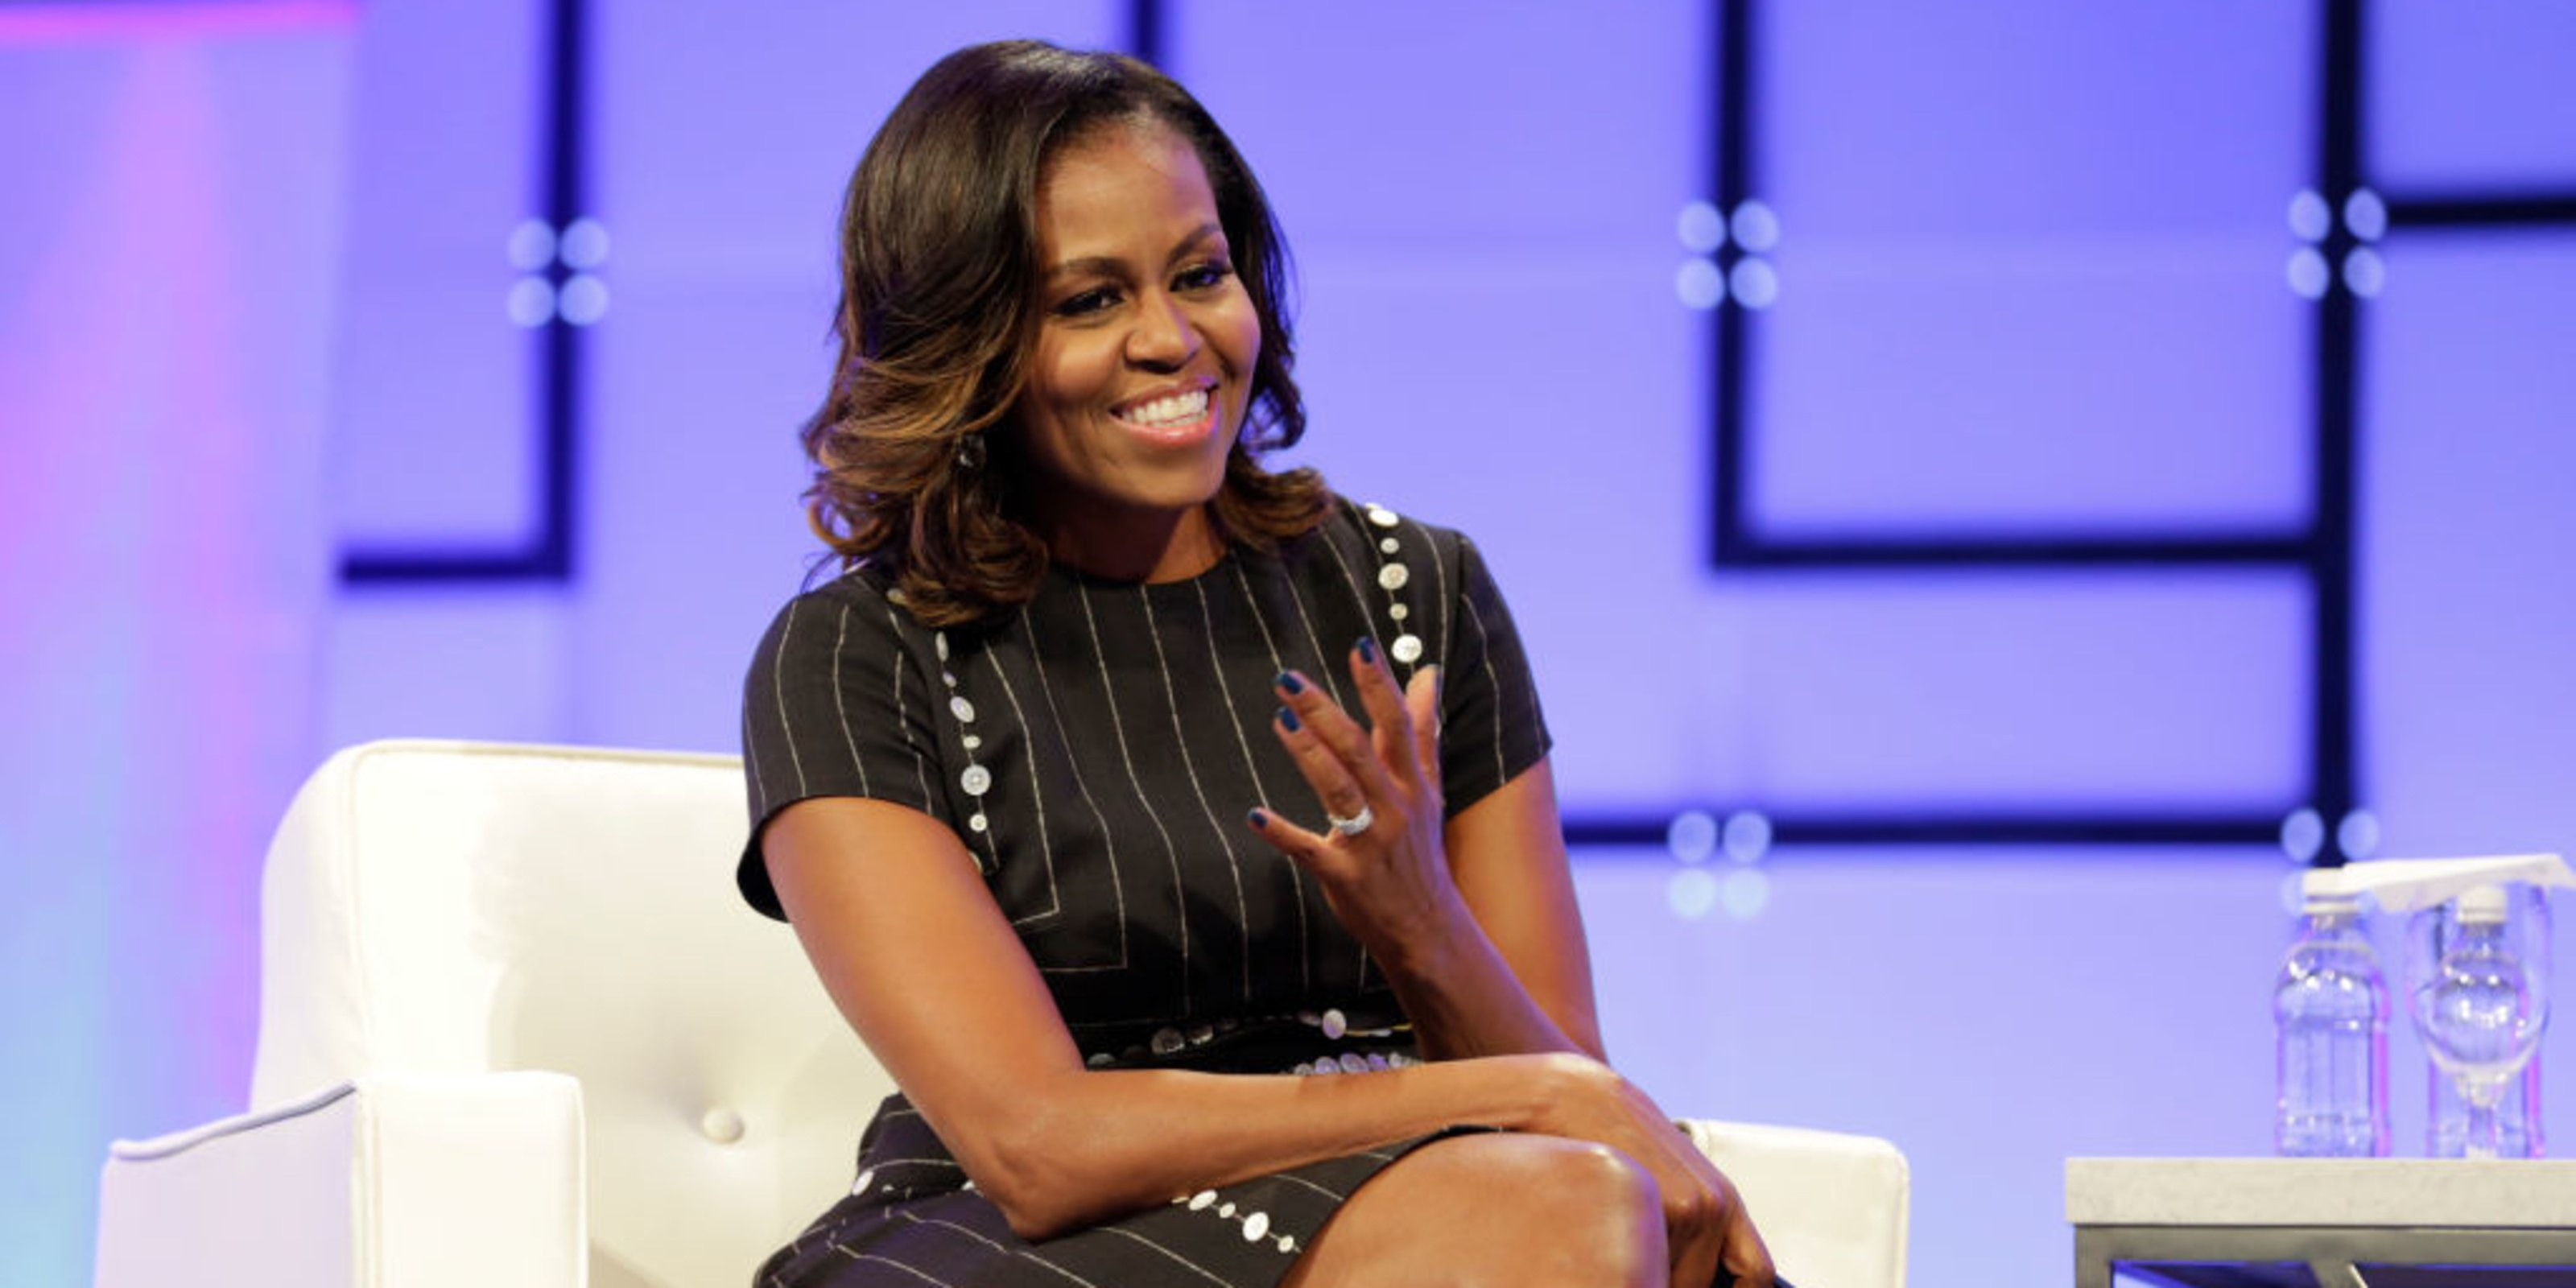 An idea for Michelle Obama: Use 2019 bully pulpit to convey IVF risks, realities